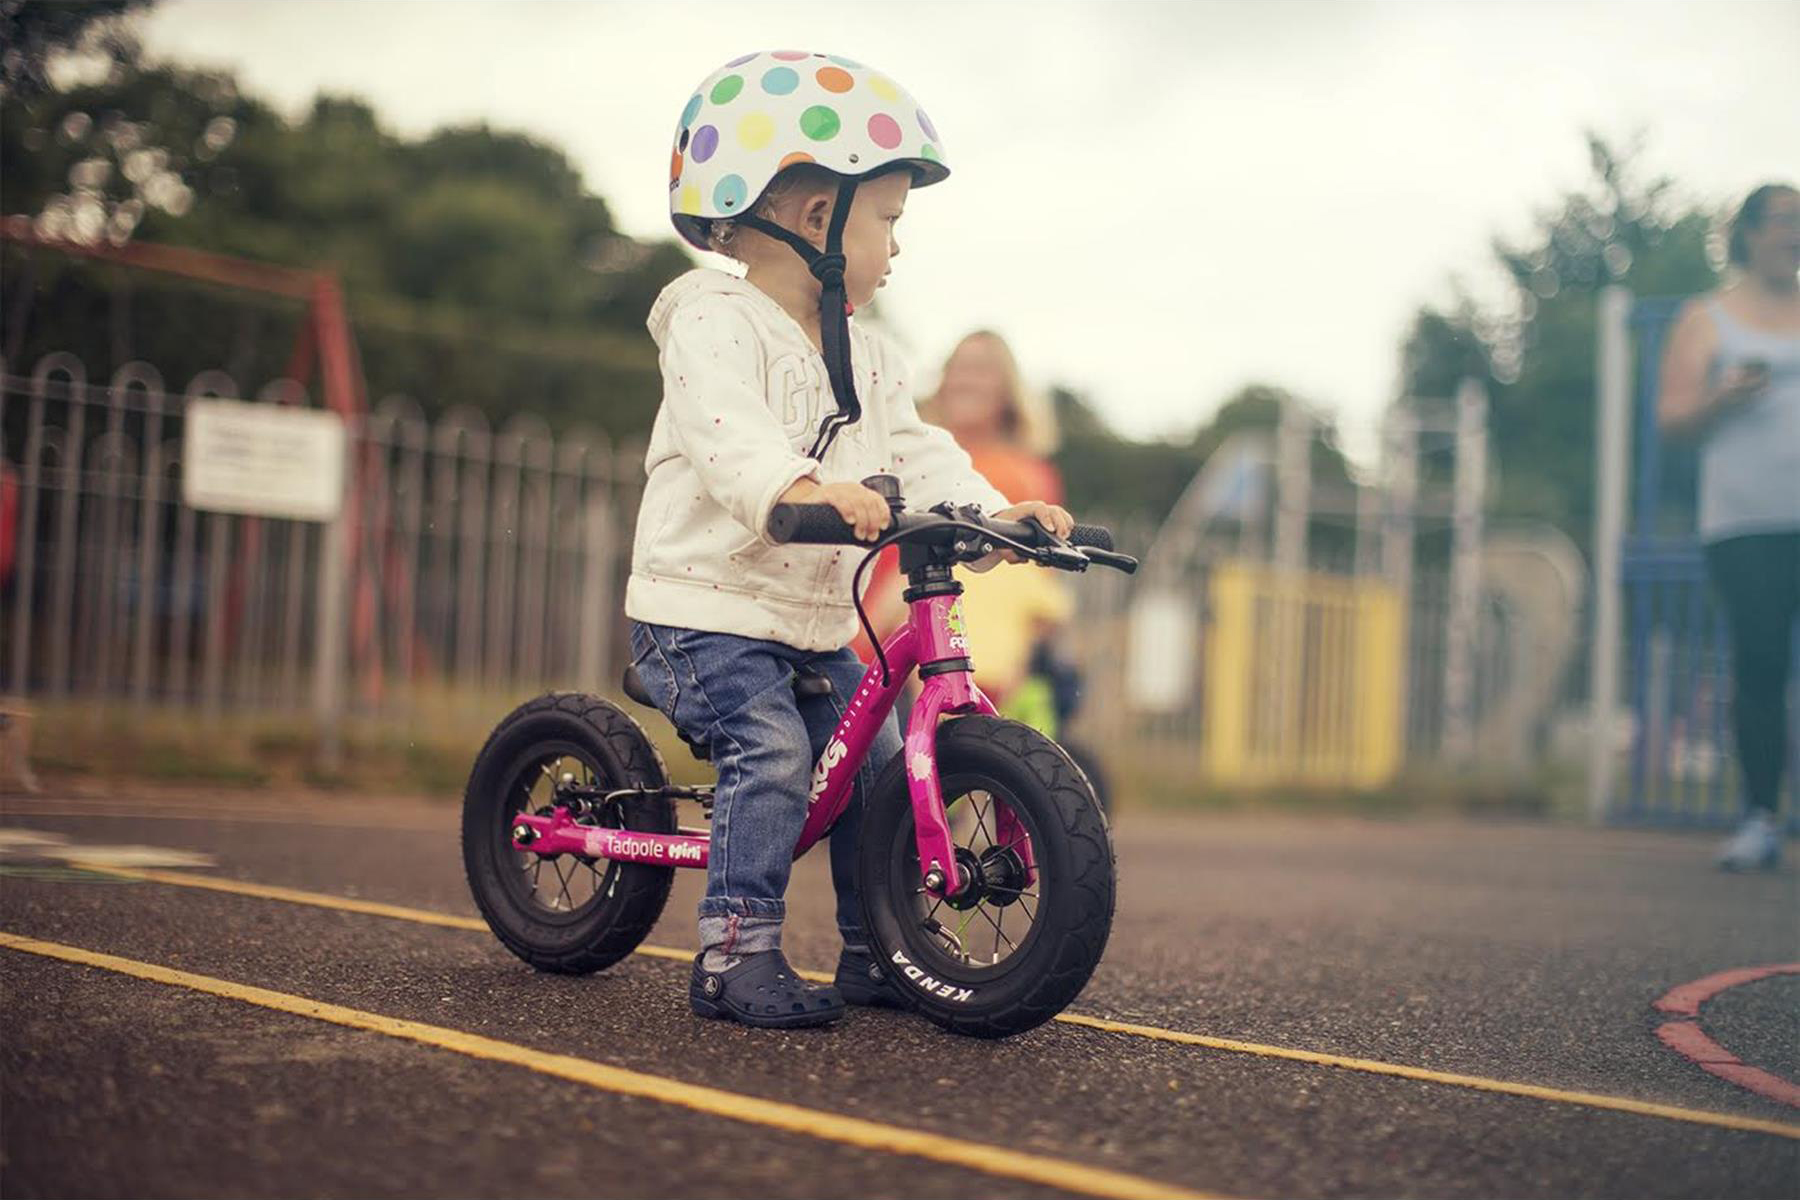 aae6ddffdfb ... balance and steer a bike before the transition to a bike with pedals.  Children walk, run and, eventually, coast alongon two wheels, with the main  ...